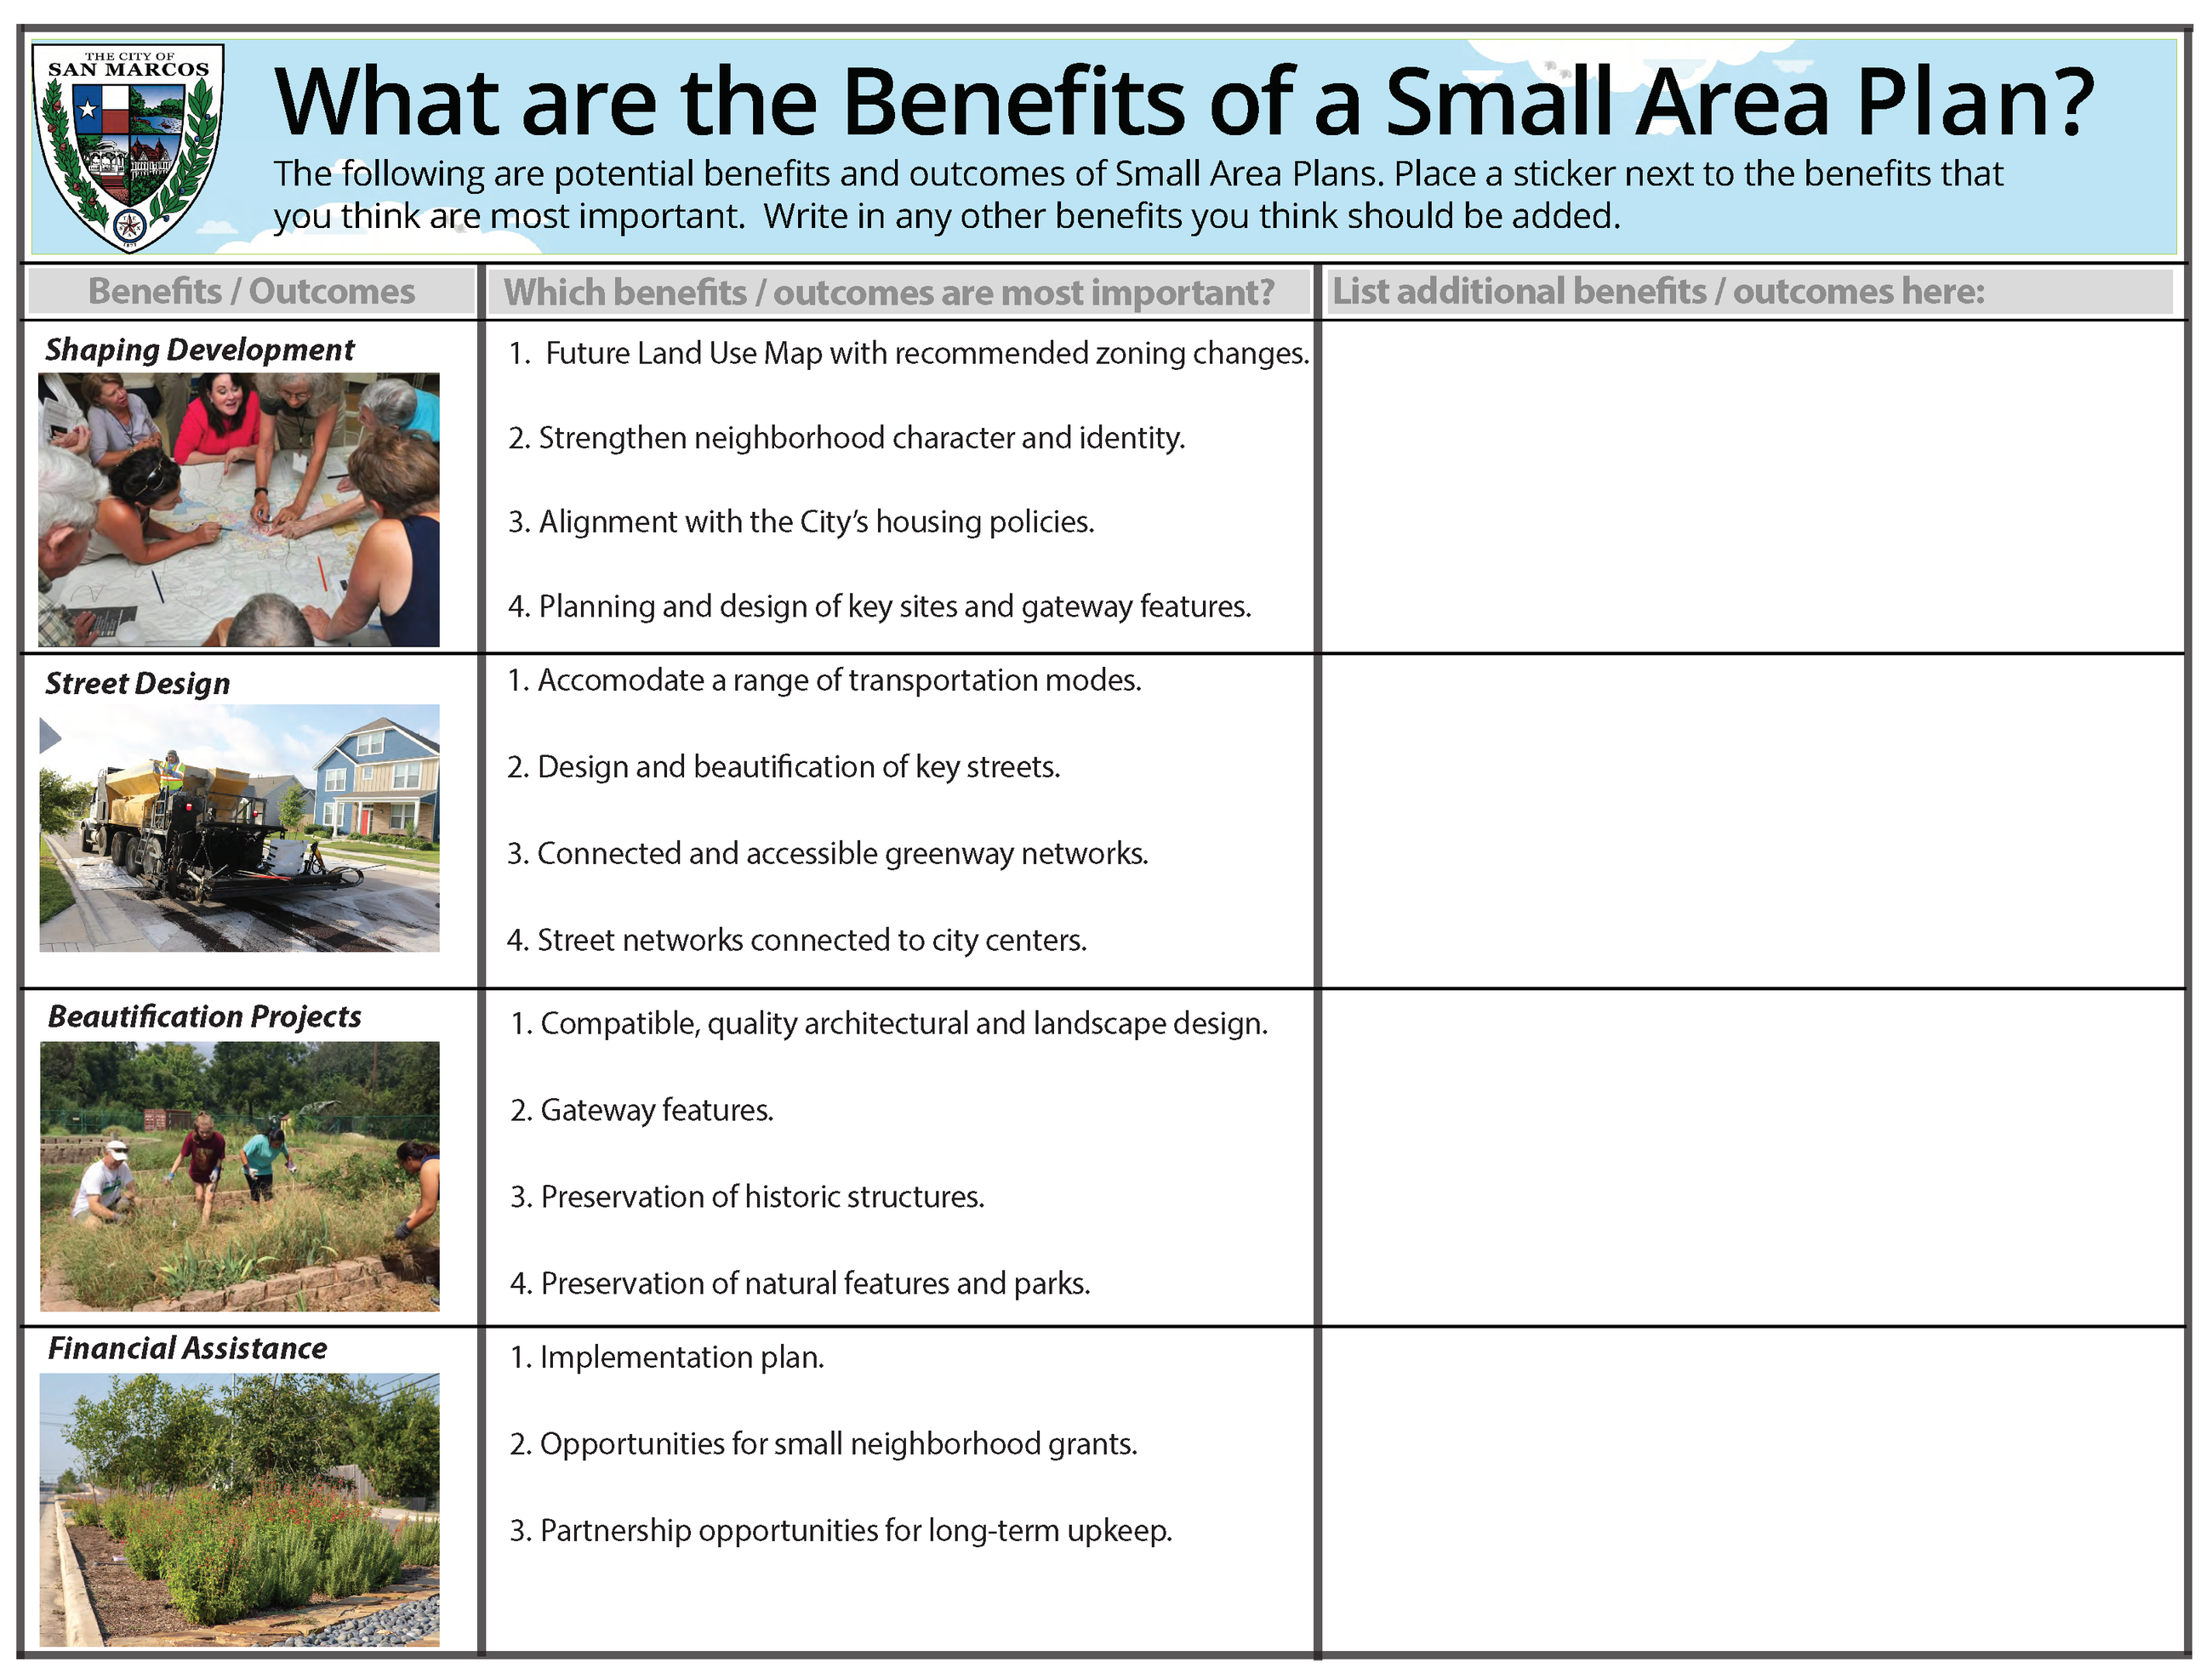 Small Area Plan - Benefits